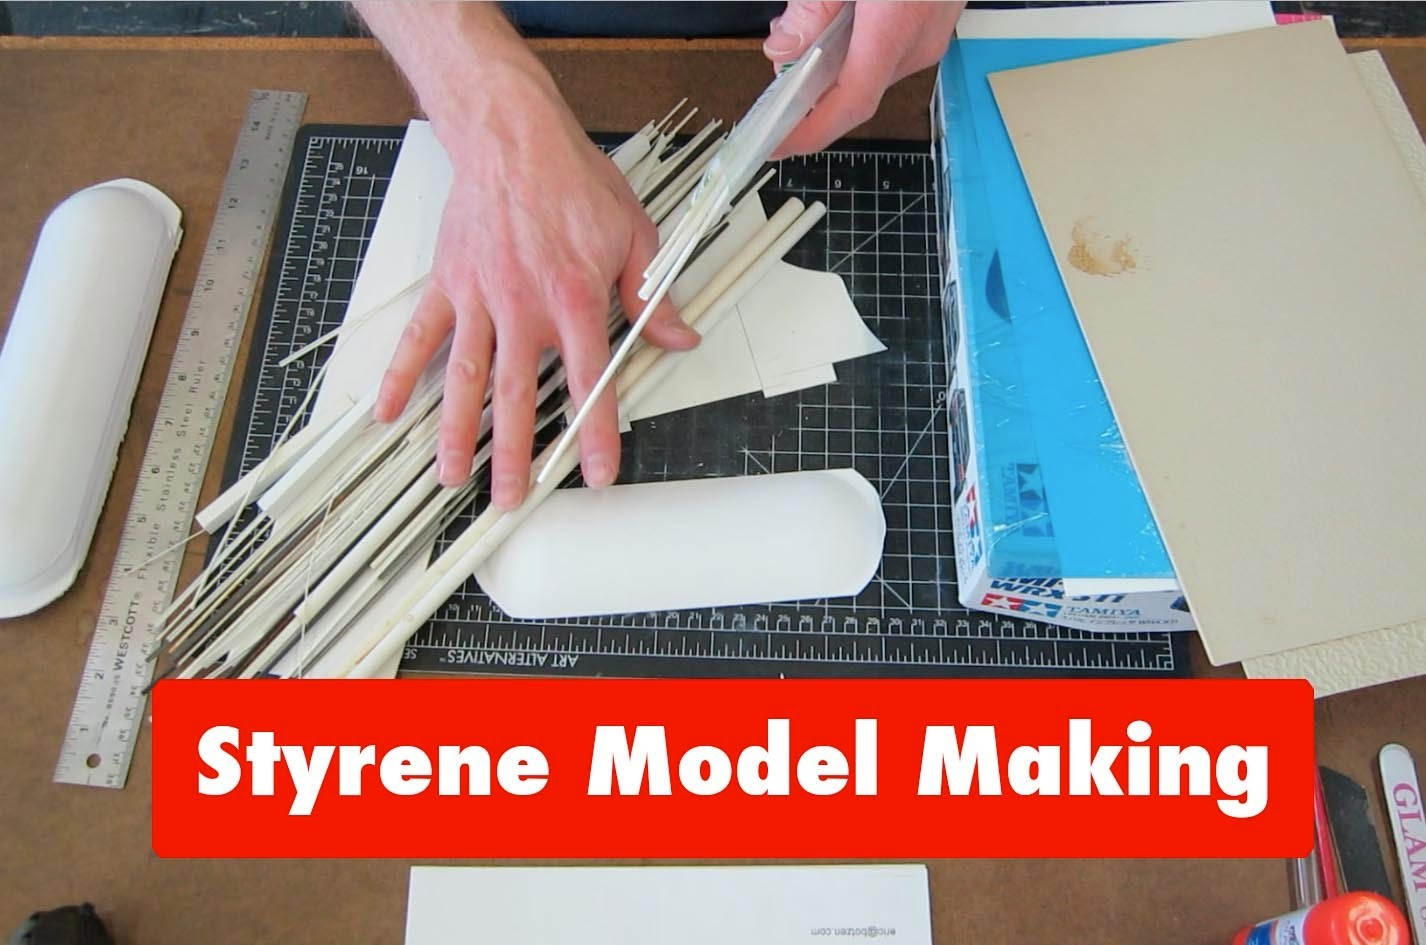 Styrene Tutorial Guide(Part 1): basic intro to plastic model making, modeling tips and tricks